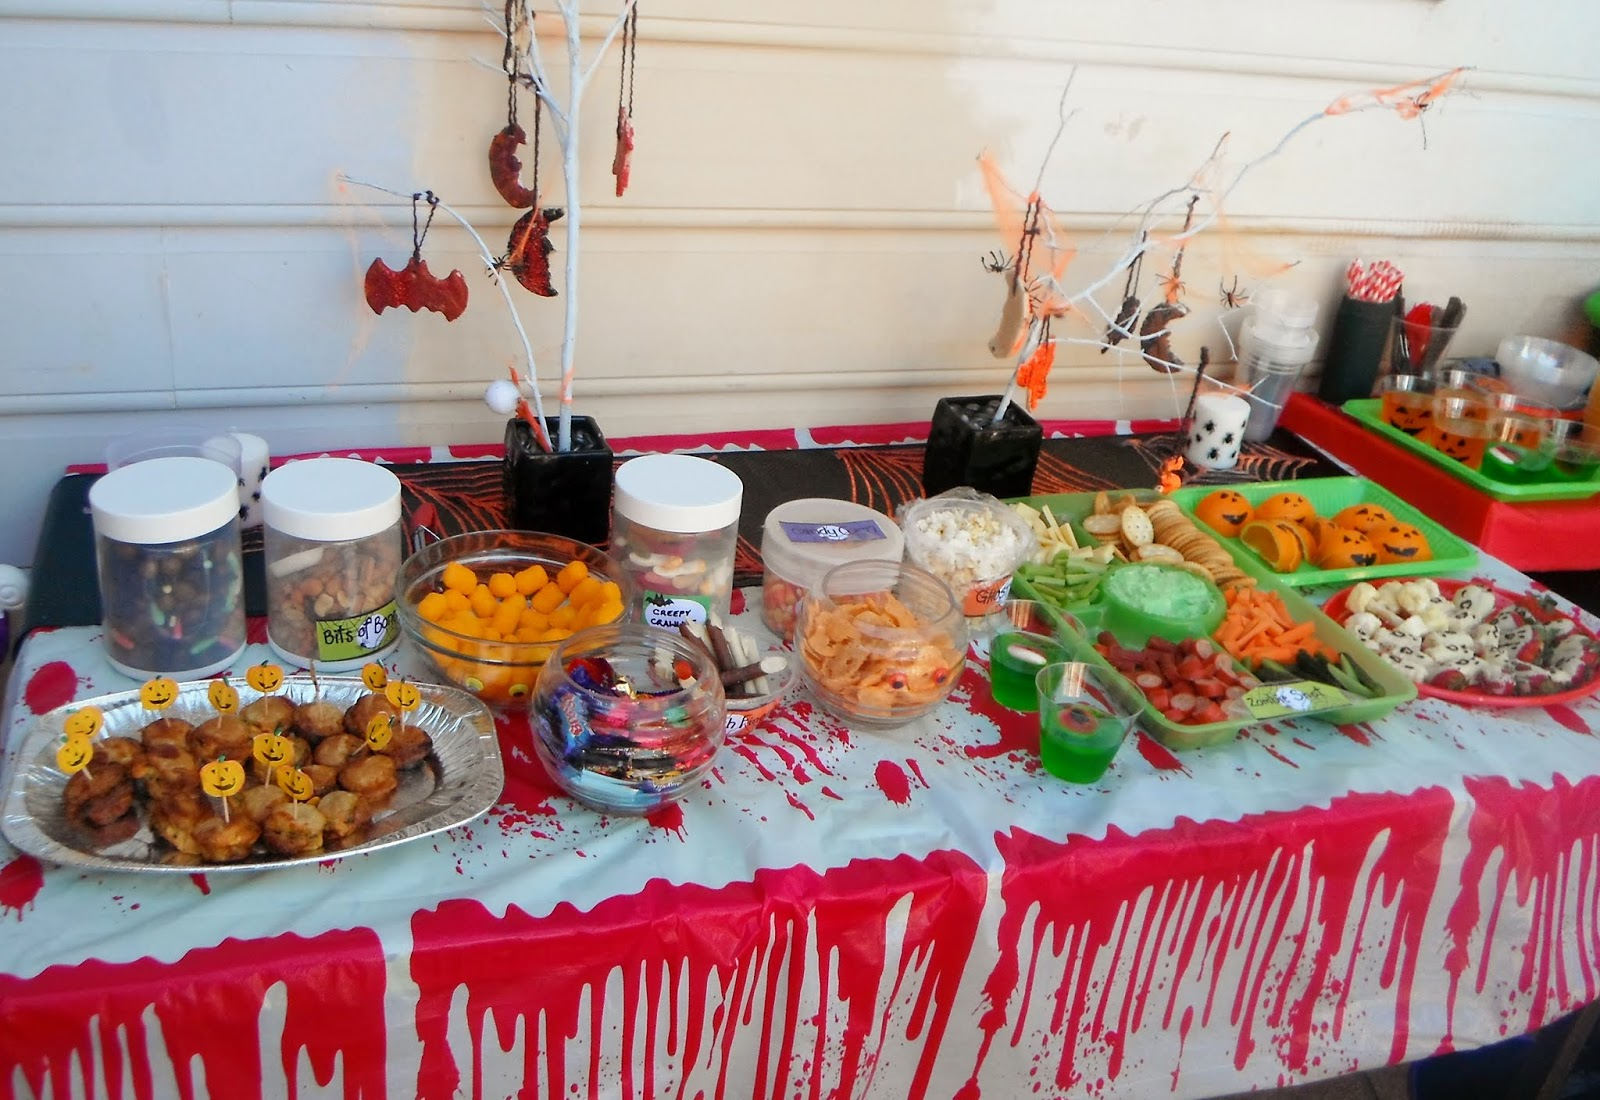 Cute Snack Ideas For Parties That Will Cheers The Party Up Homesfeed